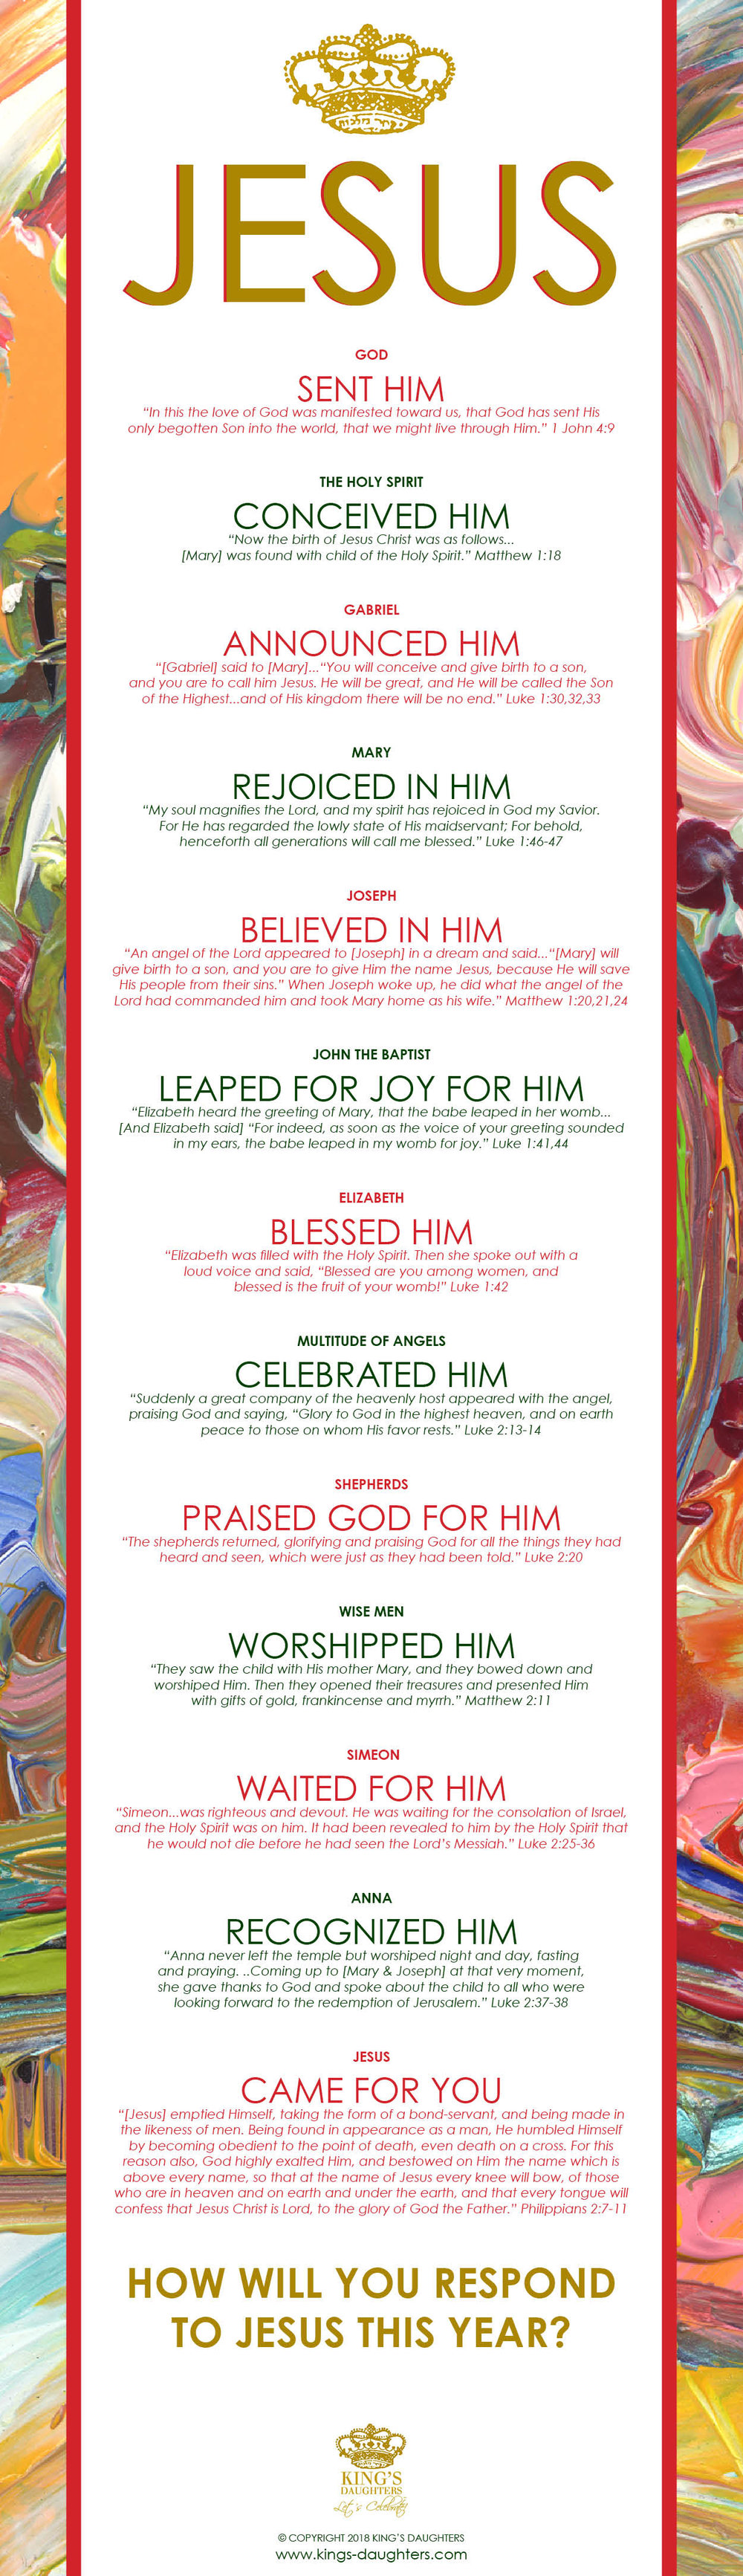 King's Daughters Christmas Devotional .jpg